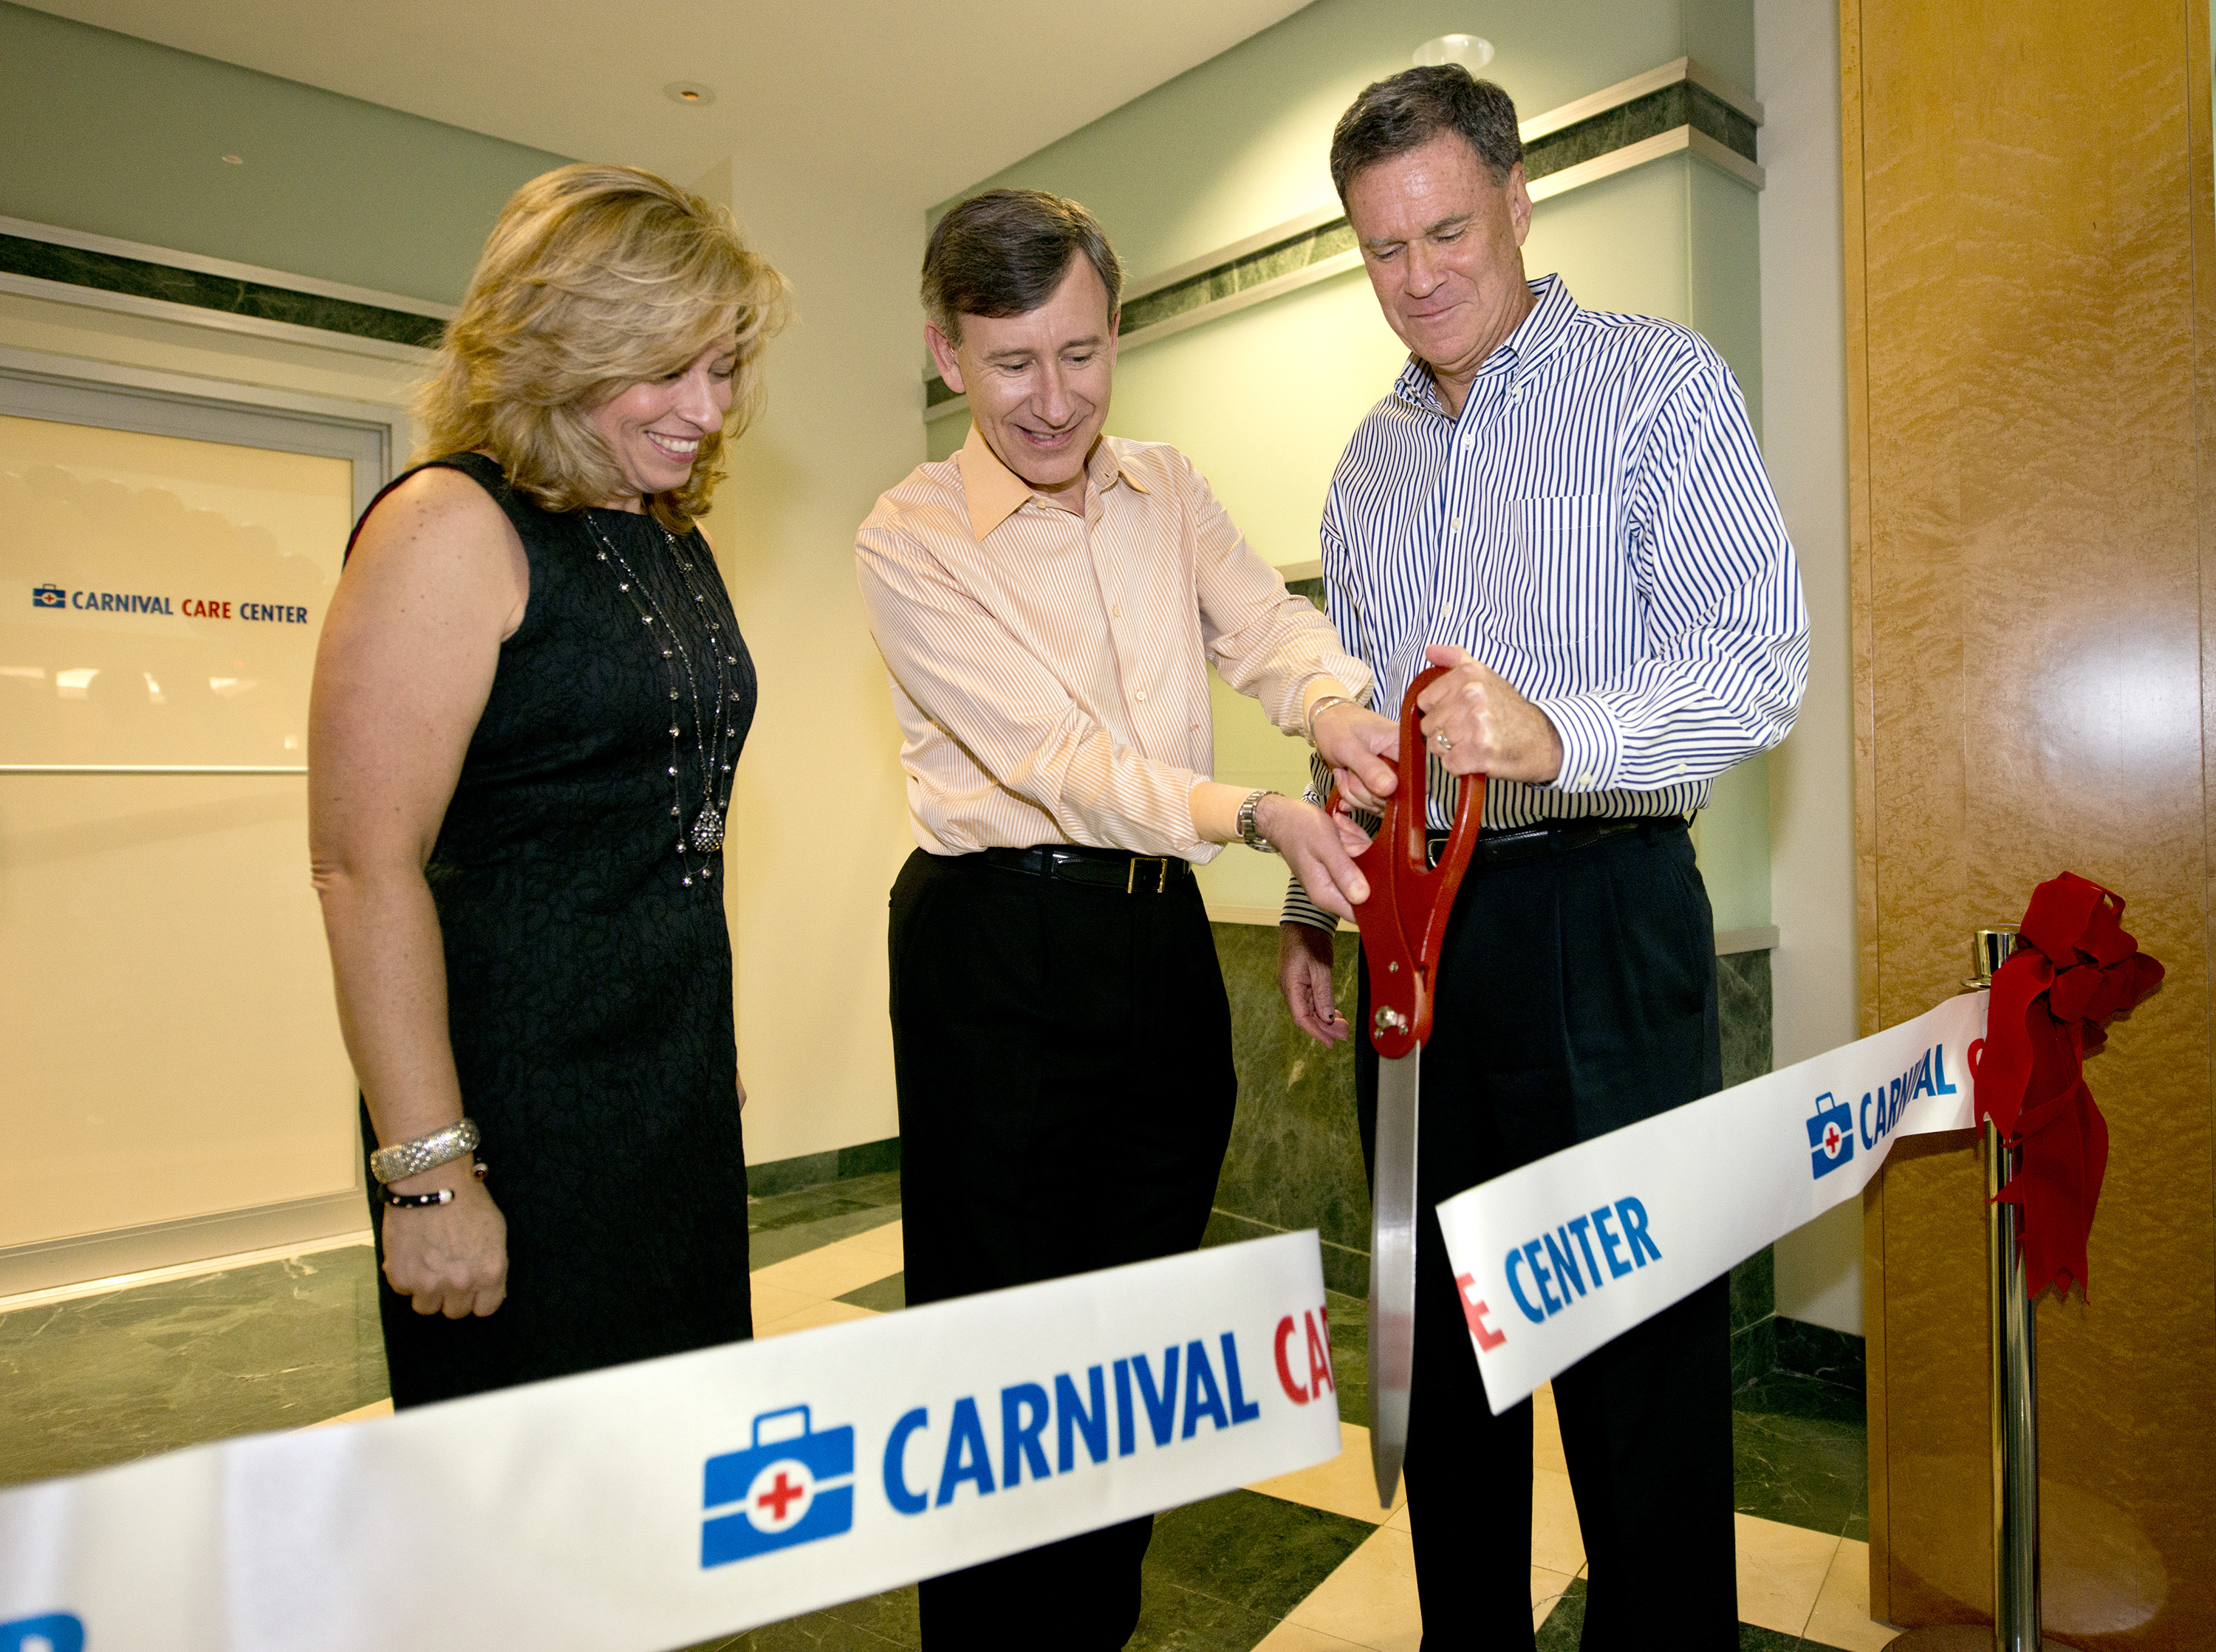 Carnival Cruise Lines Opens On-Site Employee Health Care Center at Miami Headquarters